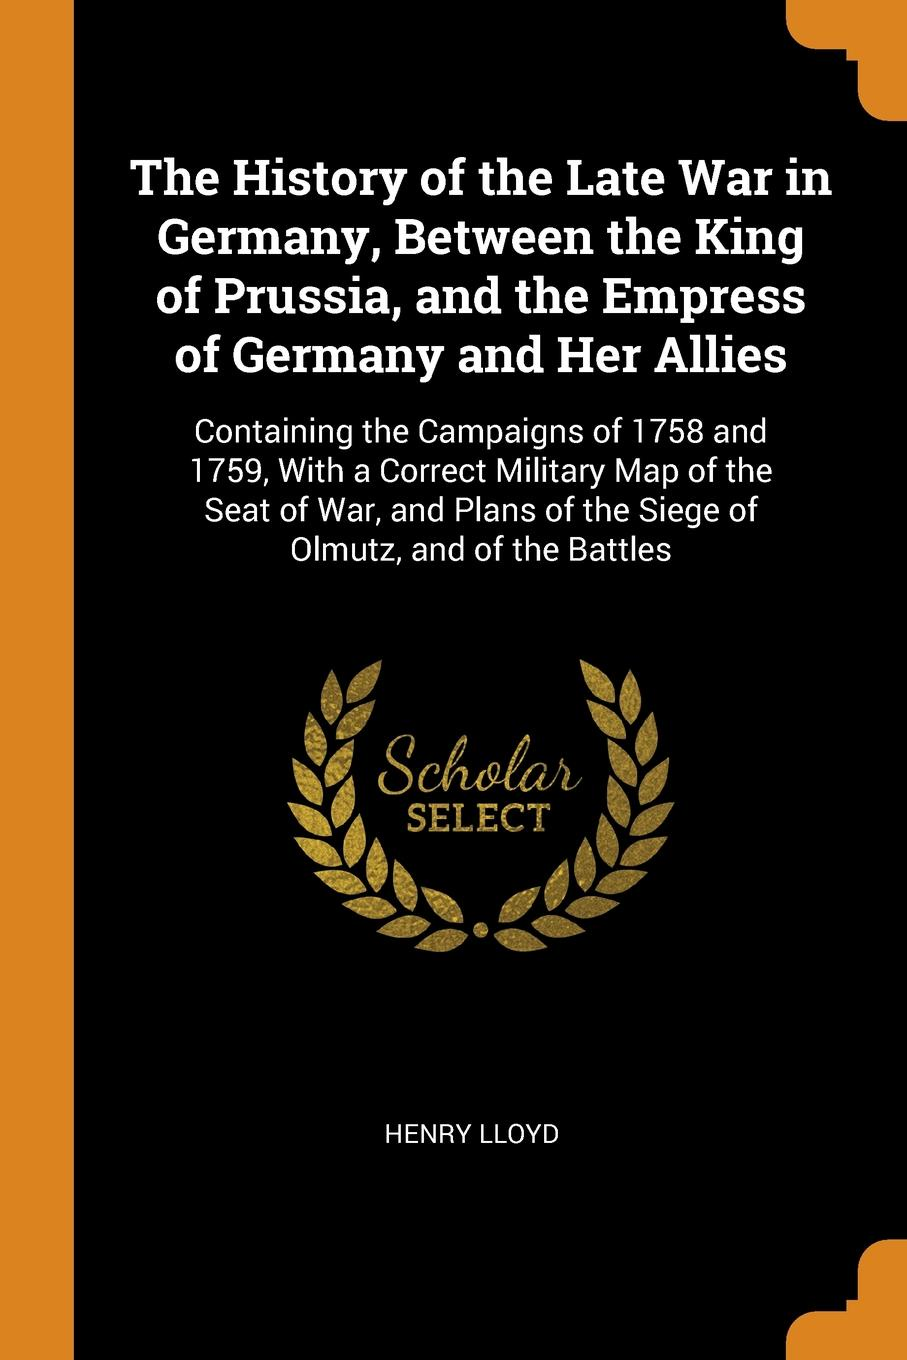 Henry Lloyd The History of the Late War in Germany, Between the King of Prussia, and the Empress of Germany and Her Allies. Containing the Campaigns of 1758 and 1759, With a Correct Military Map of the Seat of War, and Plans of the Siege of Olmutz, and of the... edmund ollier cassell s history of the war between france and germany 1870 1871 2